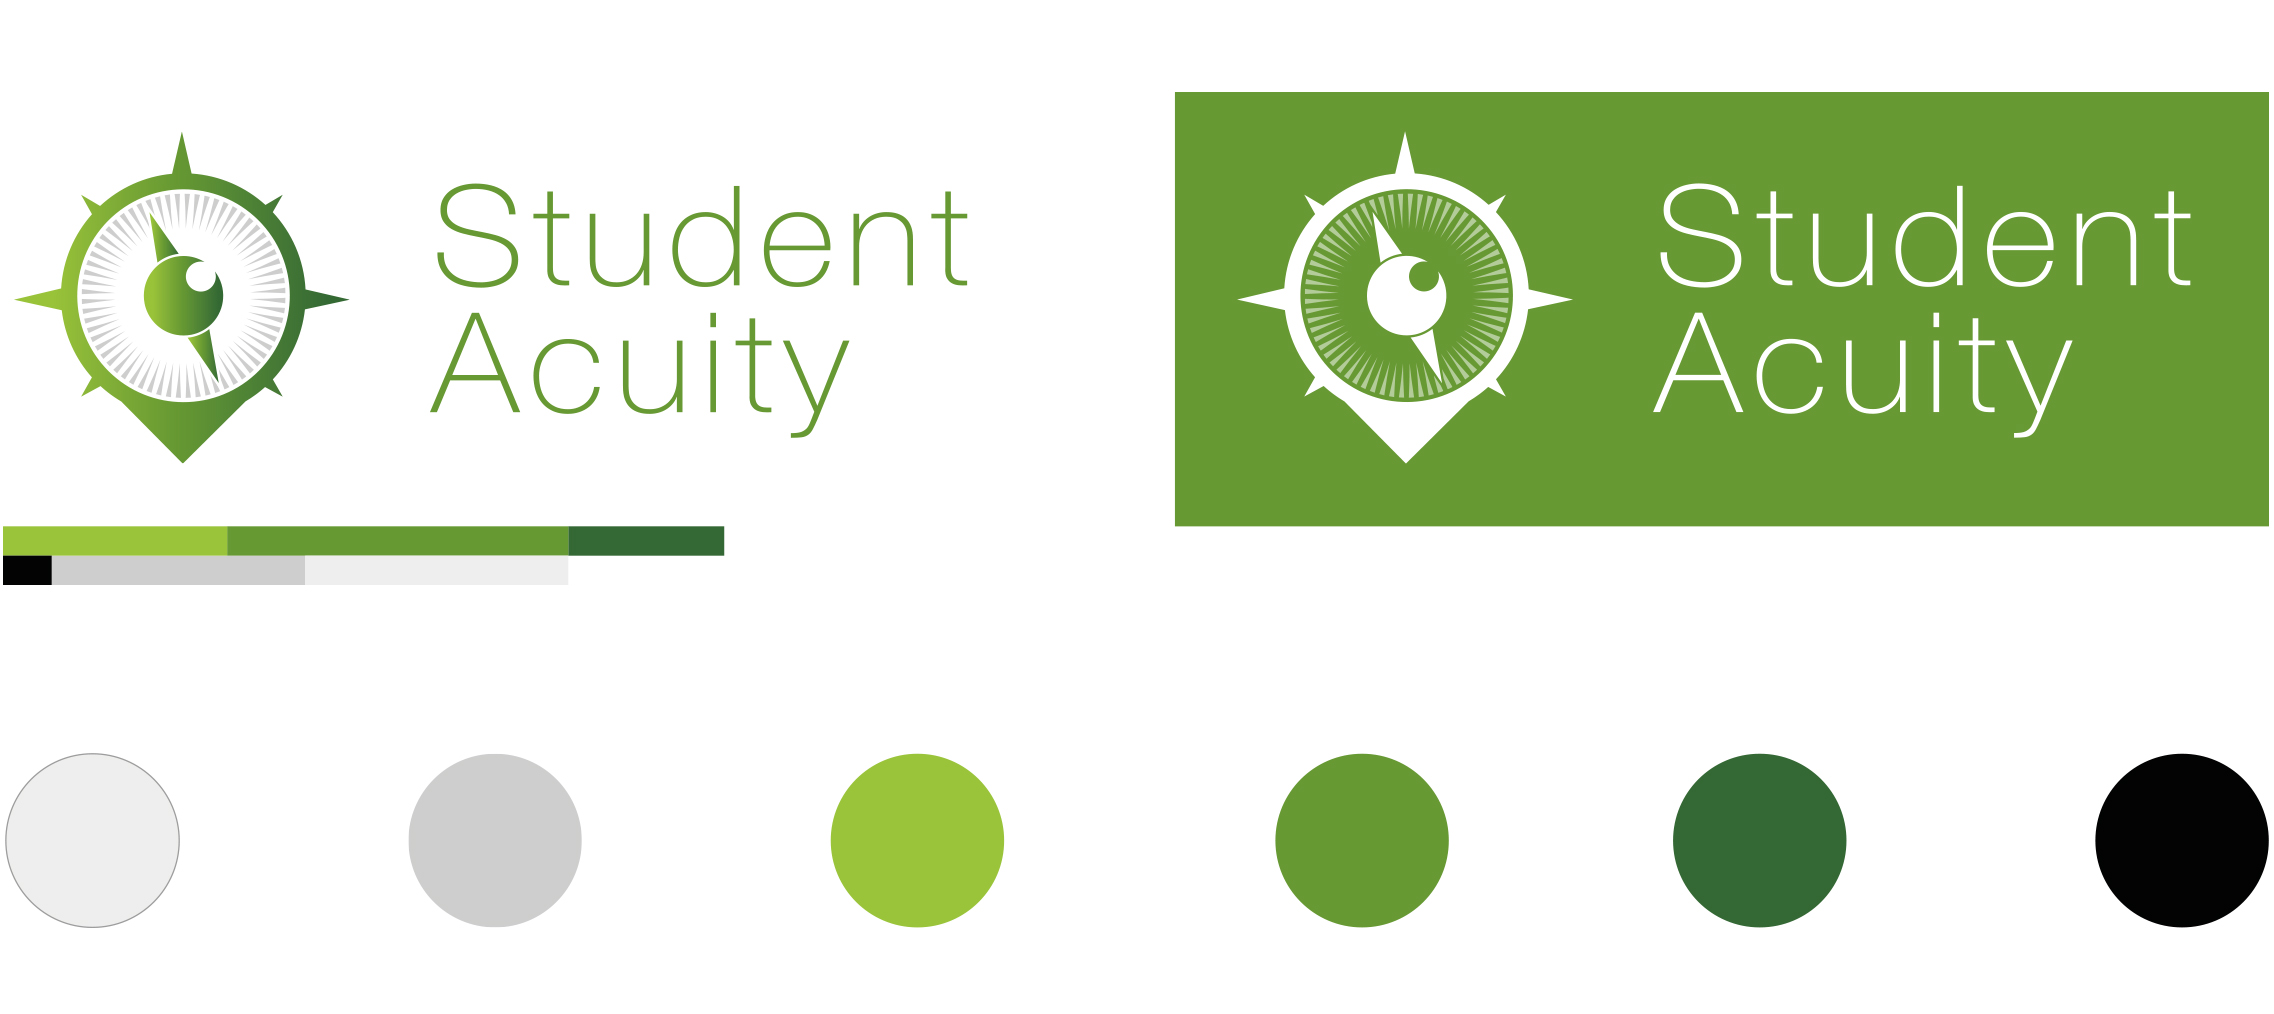 Student Acuity 6